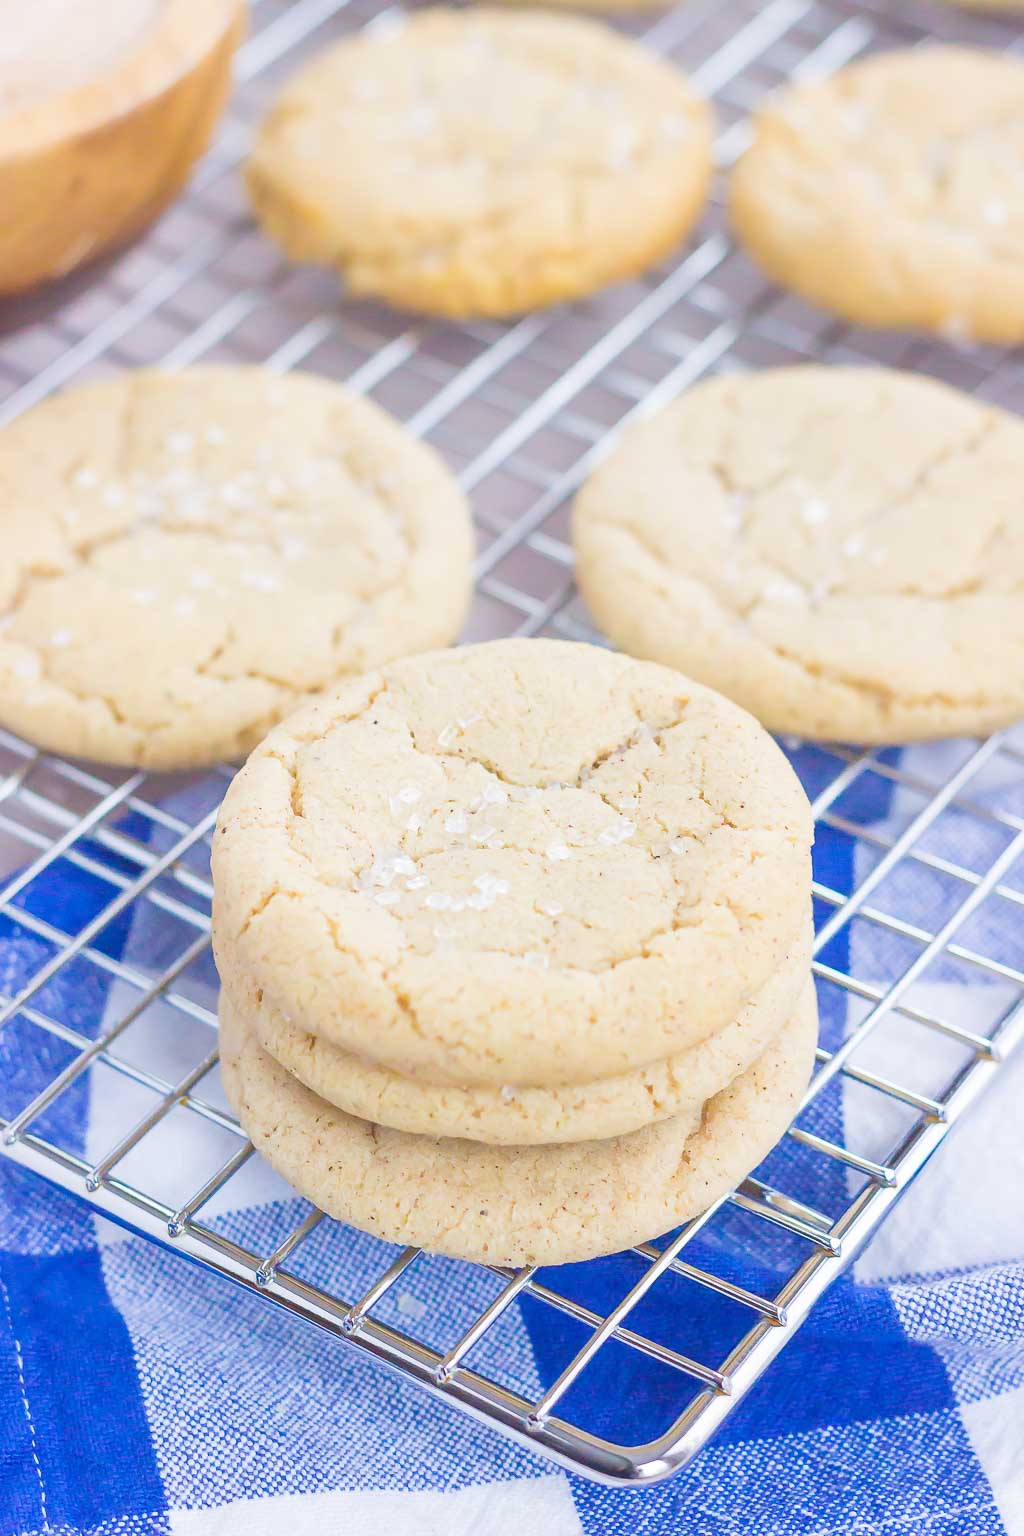 These Chai Sugar Cookies are soft, chewy, and packed with cozy spices. Filled with warm flavors and easy to make, this simple cookie will quickly become your new favorite sweet treat!